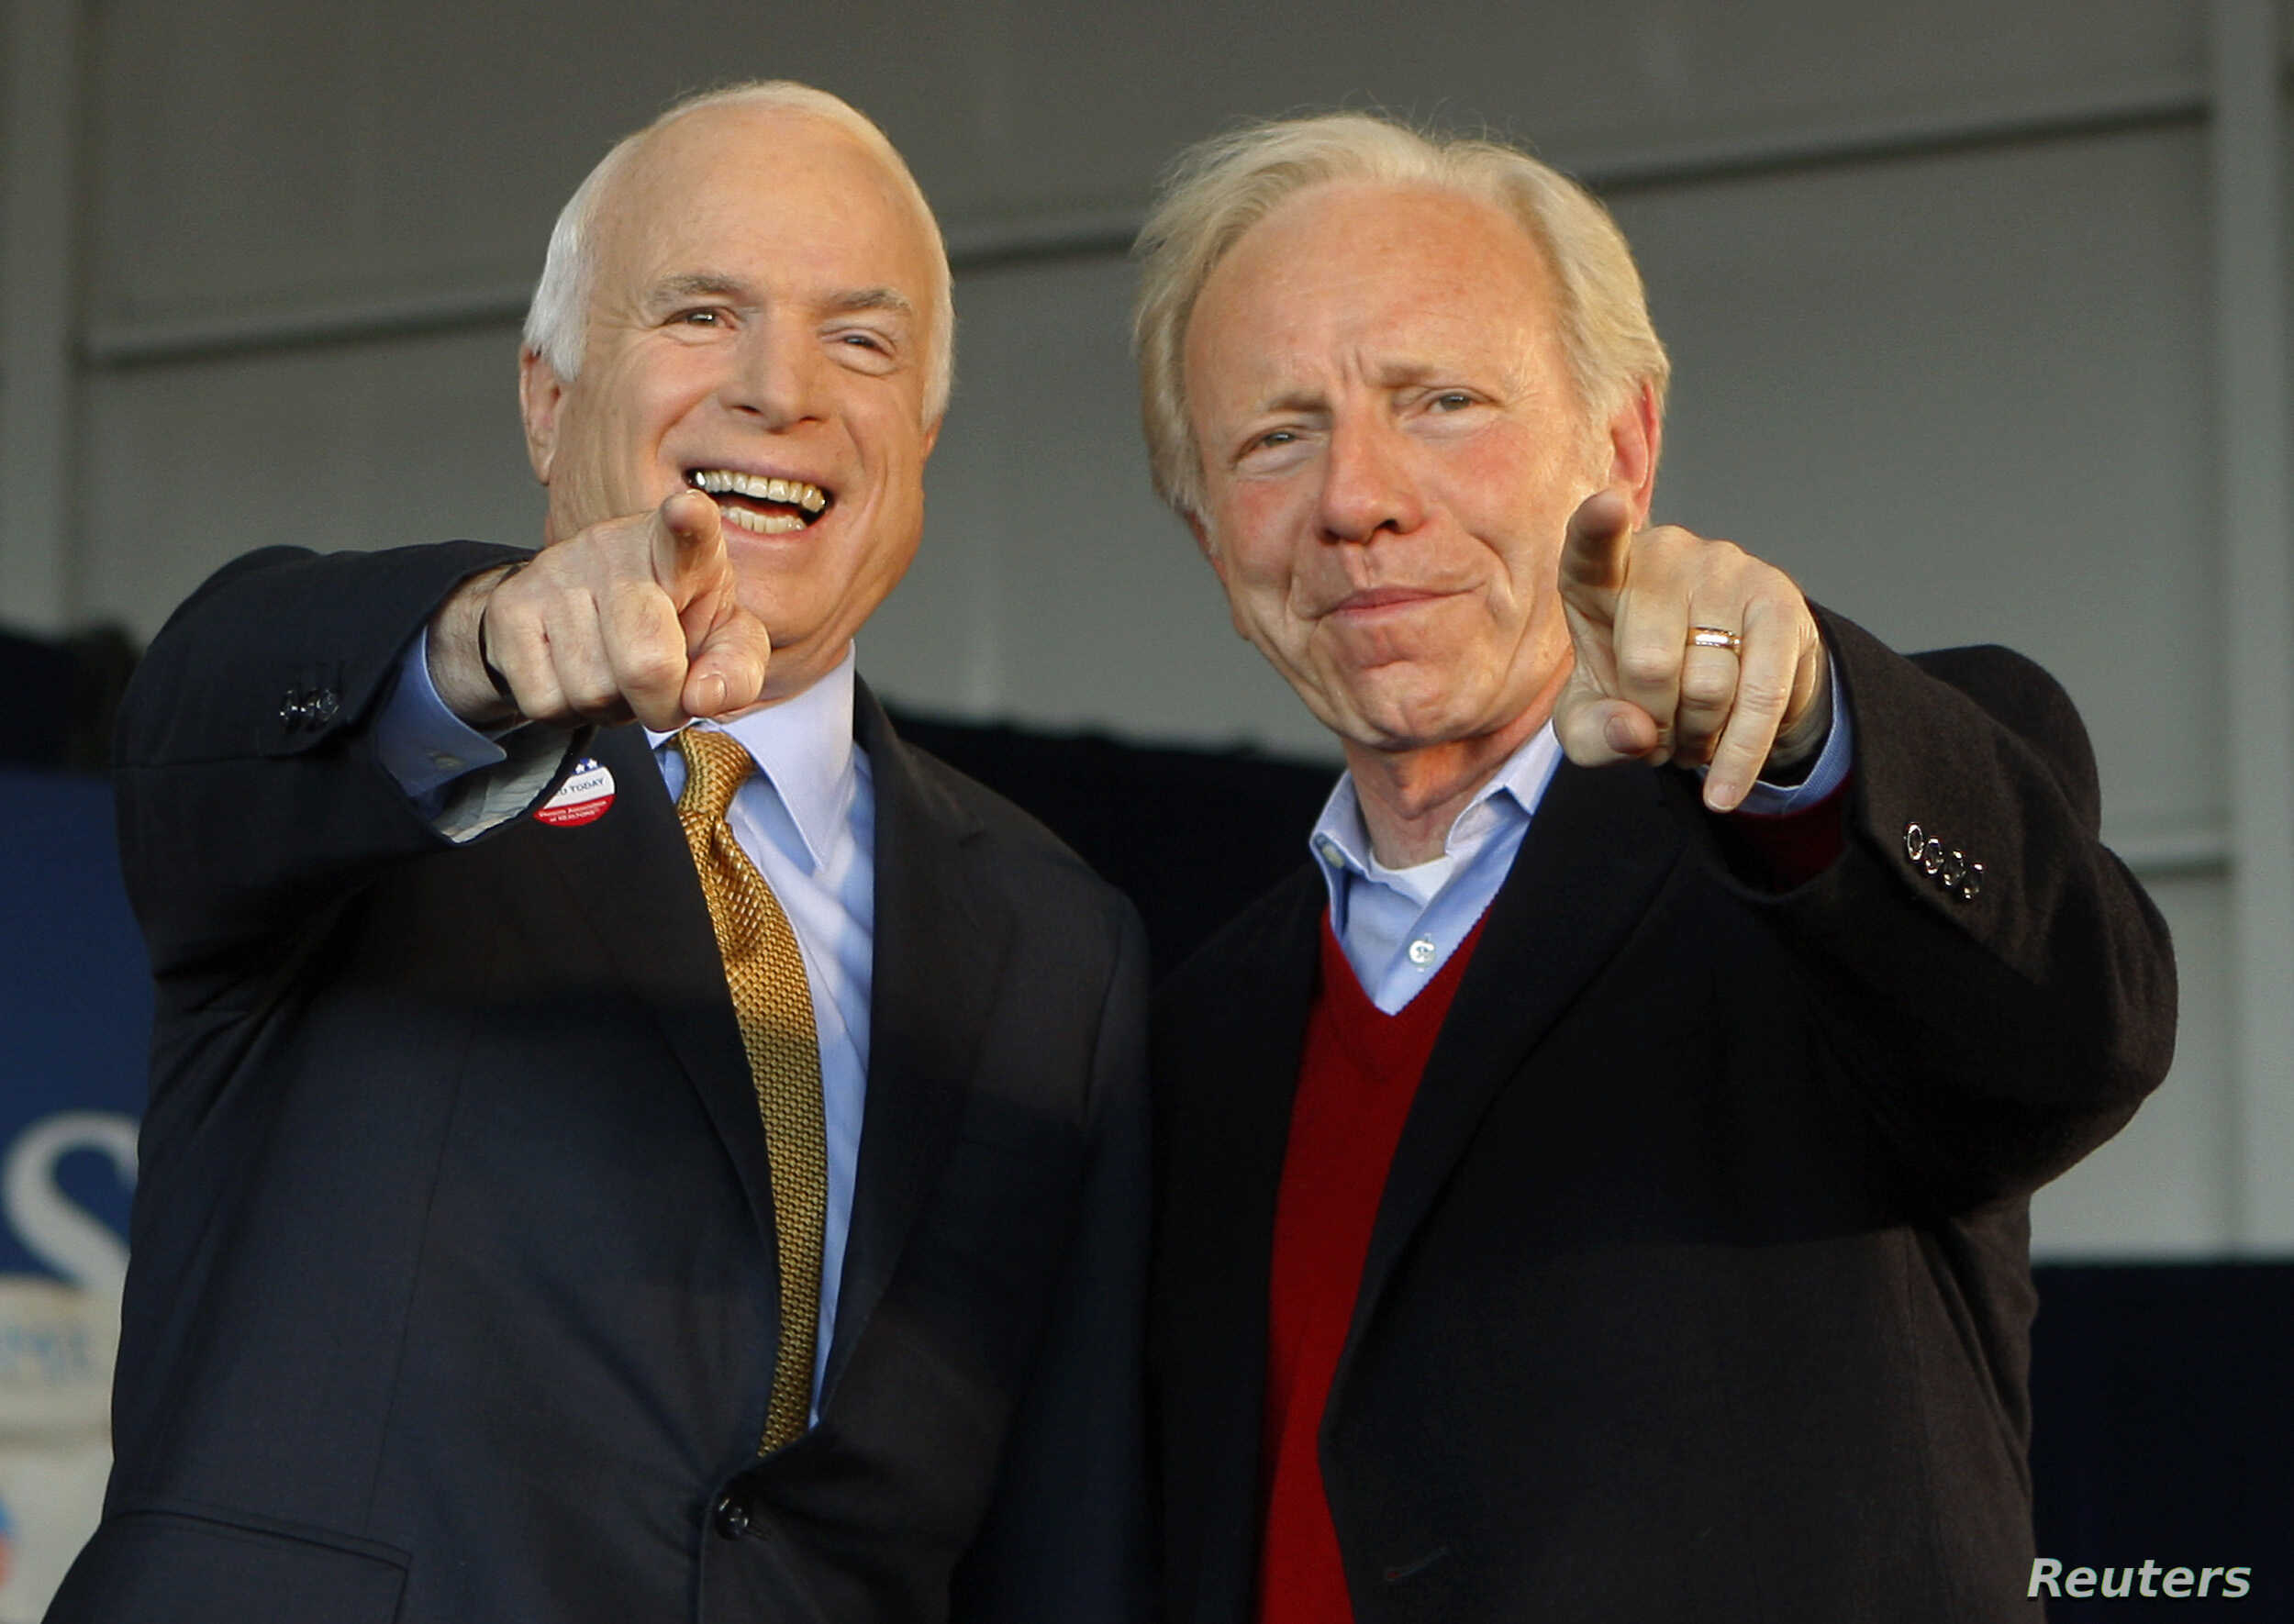 U.S. Republican presidential nominee Senator John McCain (R-AZ) (L) and U.S. Senator Joe Lieberman (I-CT) point to a sign in the crowd at a campaign rally in Grand Junction, Colorado November 4, 2008, the day of the U.S. presidential election.